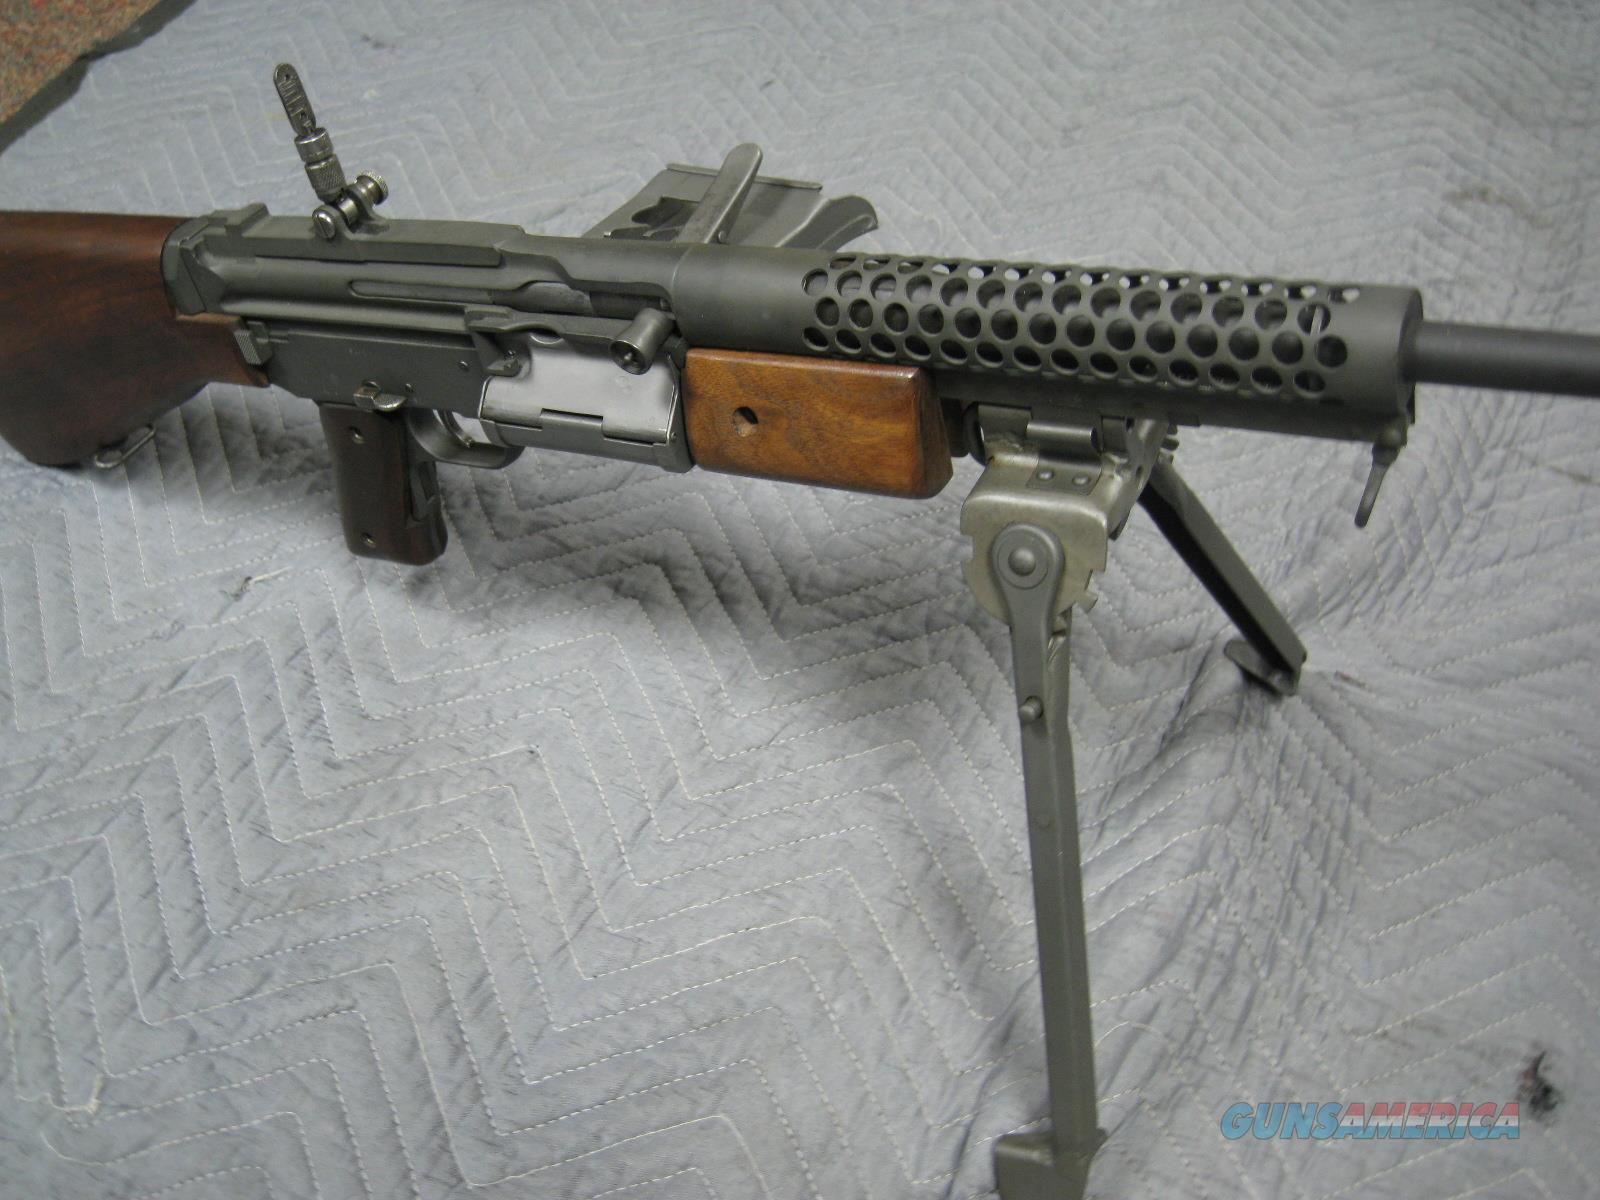 Johnson+M1941+for+Sale 1941 Johnson m1941 Light machine gun (semi-auto ...